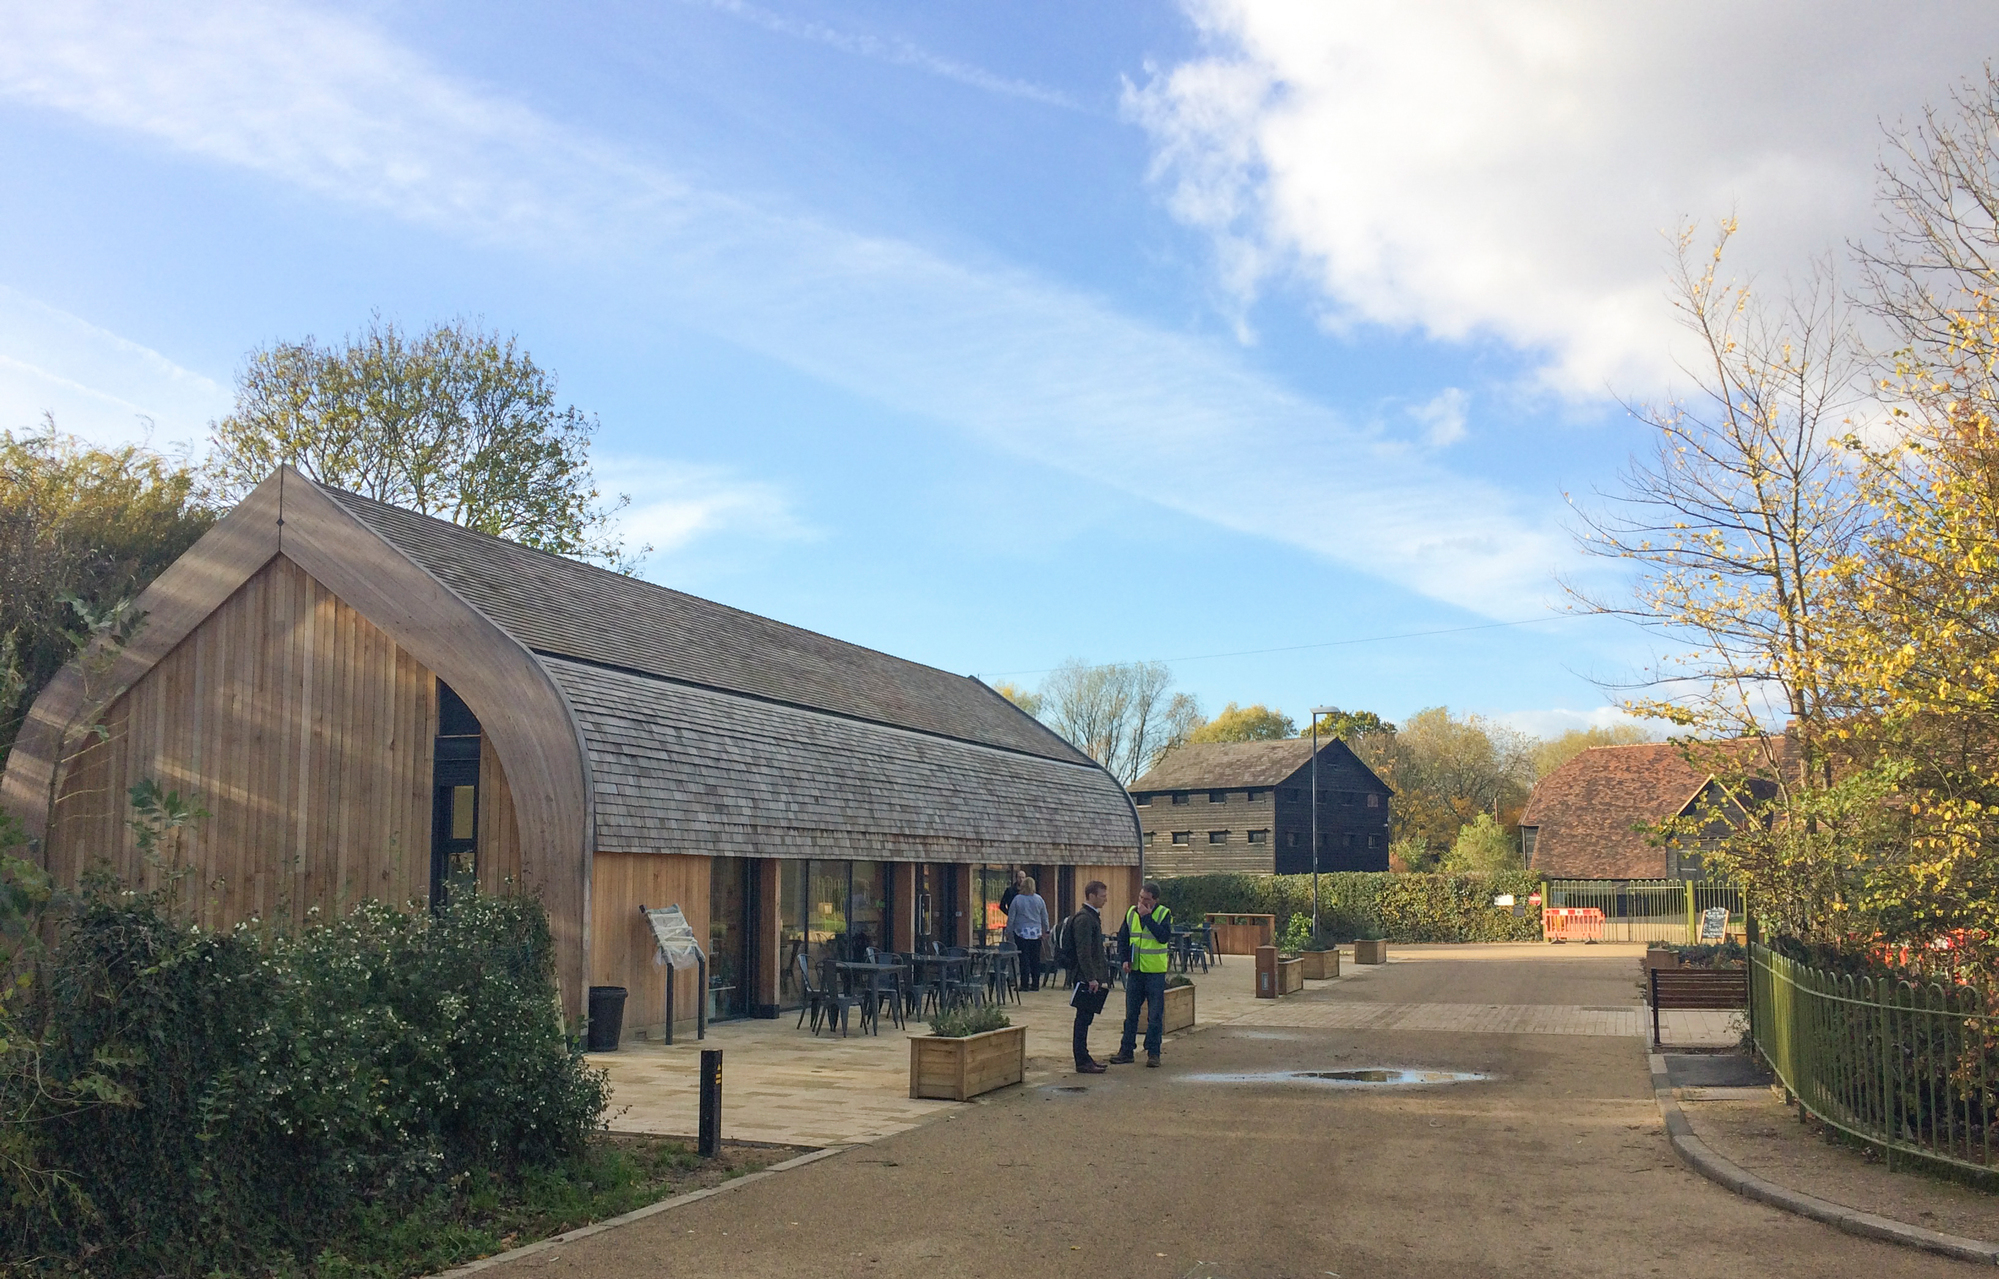 Headstone Manor opens to the public